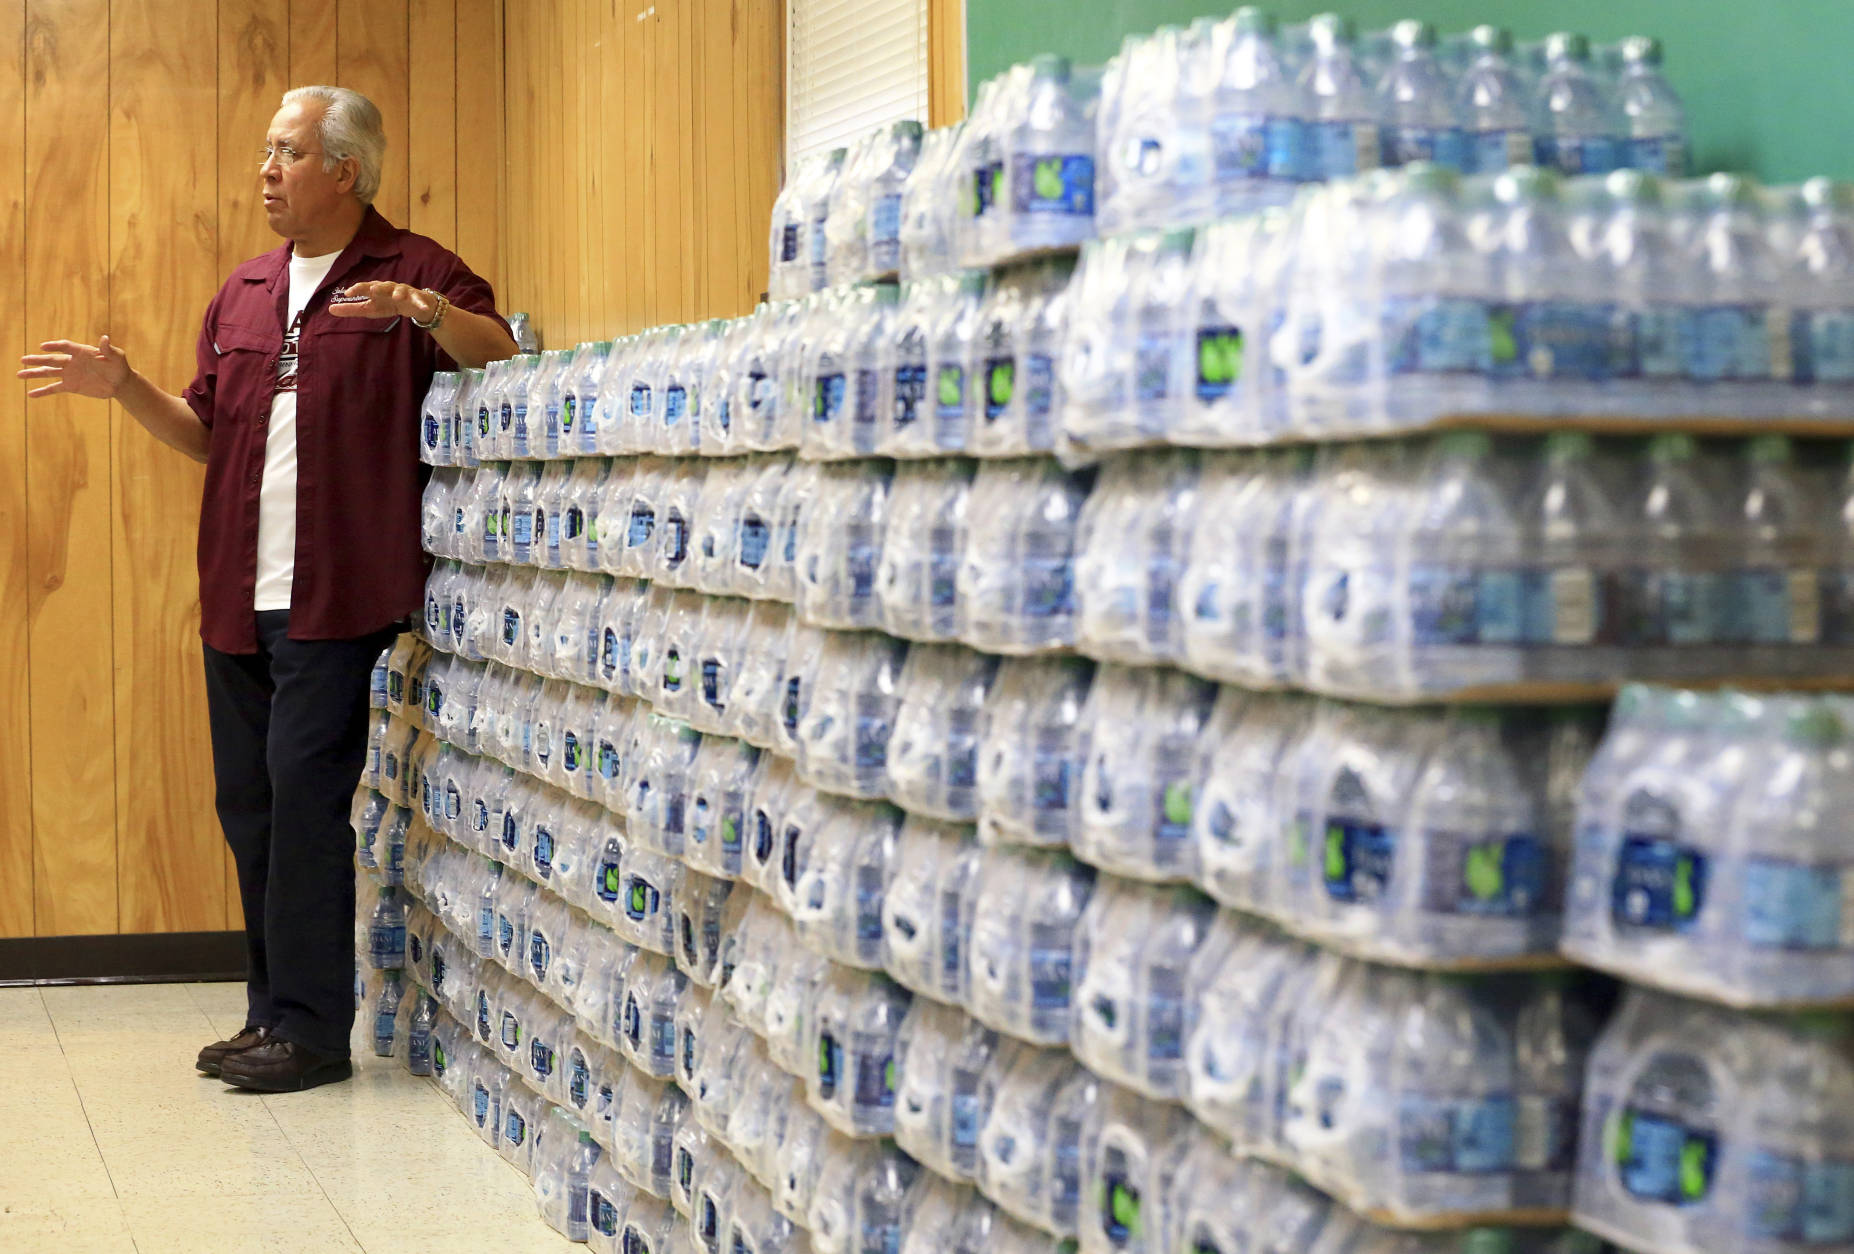 Superintendent Dr. Arturo Almendarez from Calallen Independent School District, speaks about how his district has bottles of water for students, Thursday, Dec. 15, 2016, in Corpus Christi, Texas. The city is warning its 320,000 residents not to use tap water because it might be contaminated with petroleum-based chemicals, prompting a rush on bottled water and the closure of local schools. (Gabe Hernandez/Corpus Christi Caller-Times via AP)